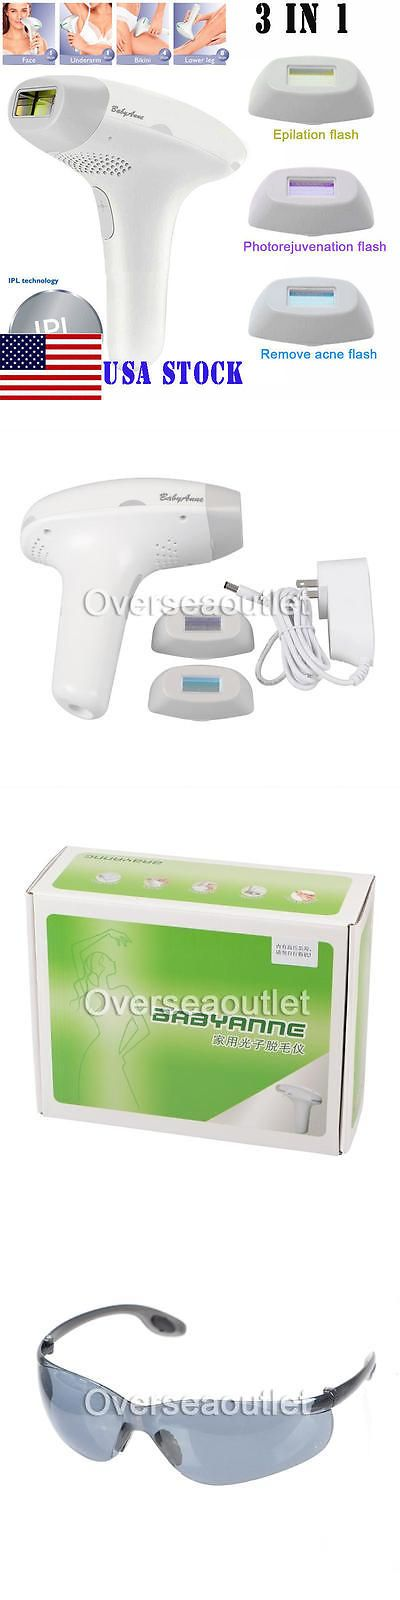 Laser Hair Removal and IPL: Babyanne 3 In 1 Laser Permanent Hair Removal Machine Face Body + Whiten Skin Fda -> BUY IT NOW ONLY: $96.88 on eBay!